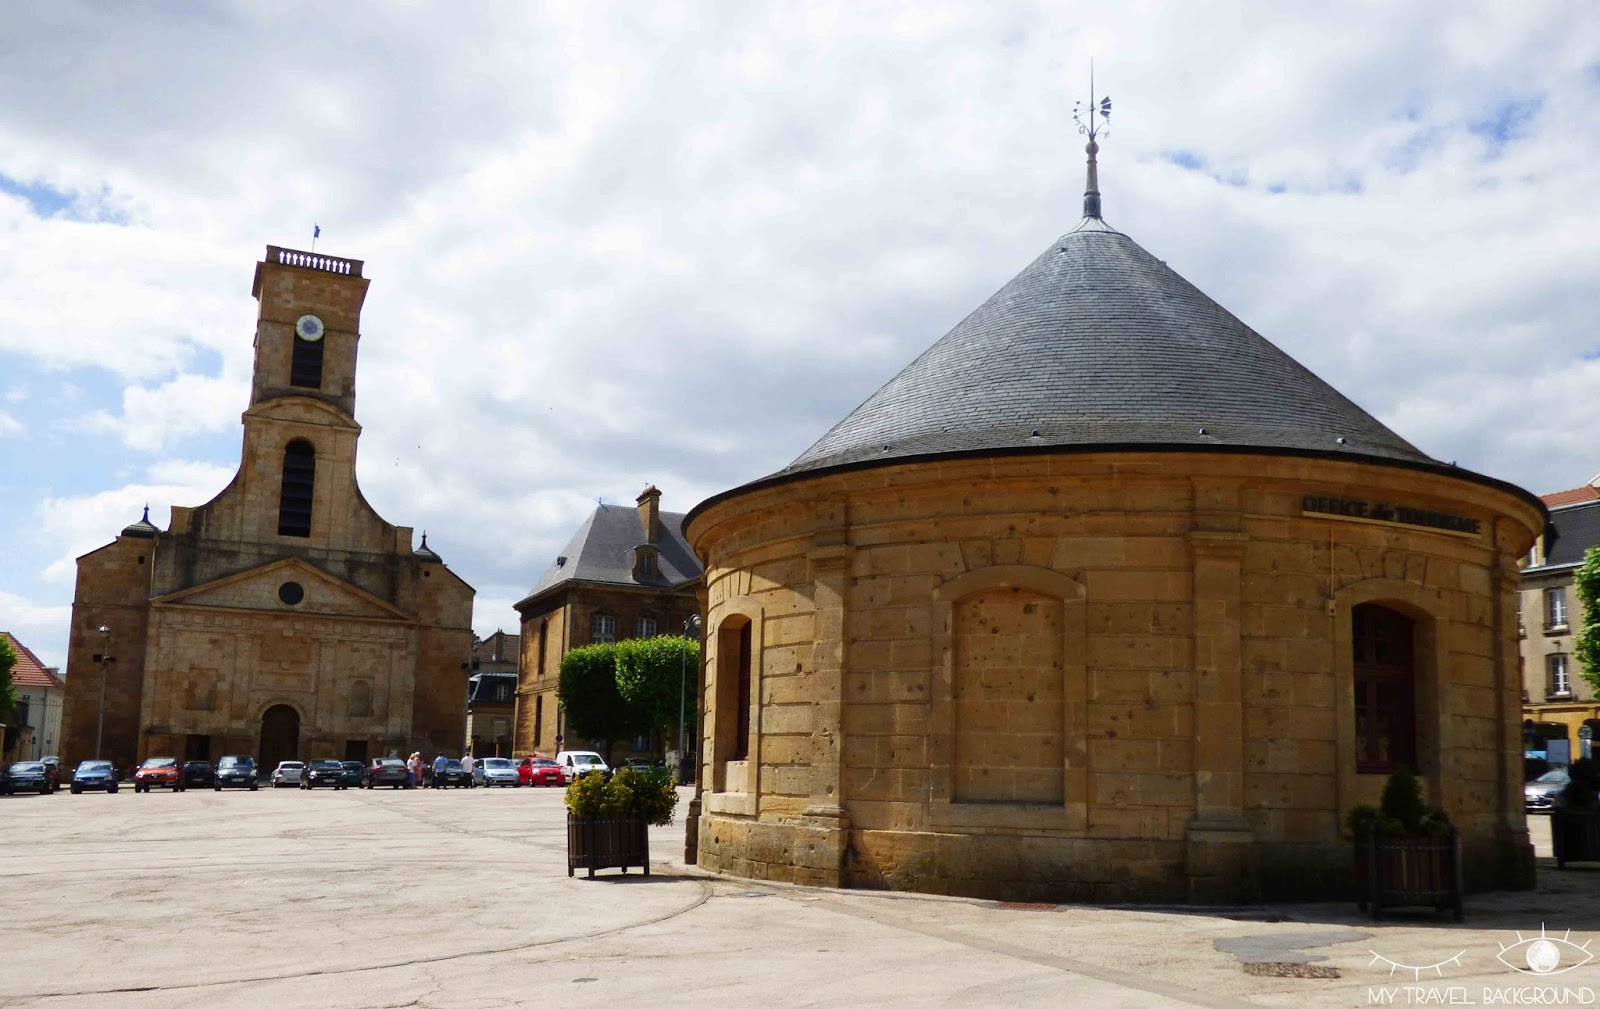 My Travel Background : A la découverte de Longwy, ville-étape du Tour de France 2017 - Rempart Vauban et place Darche Longwy